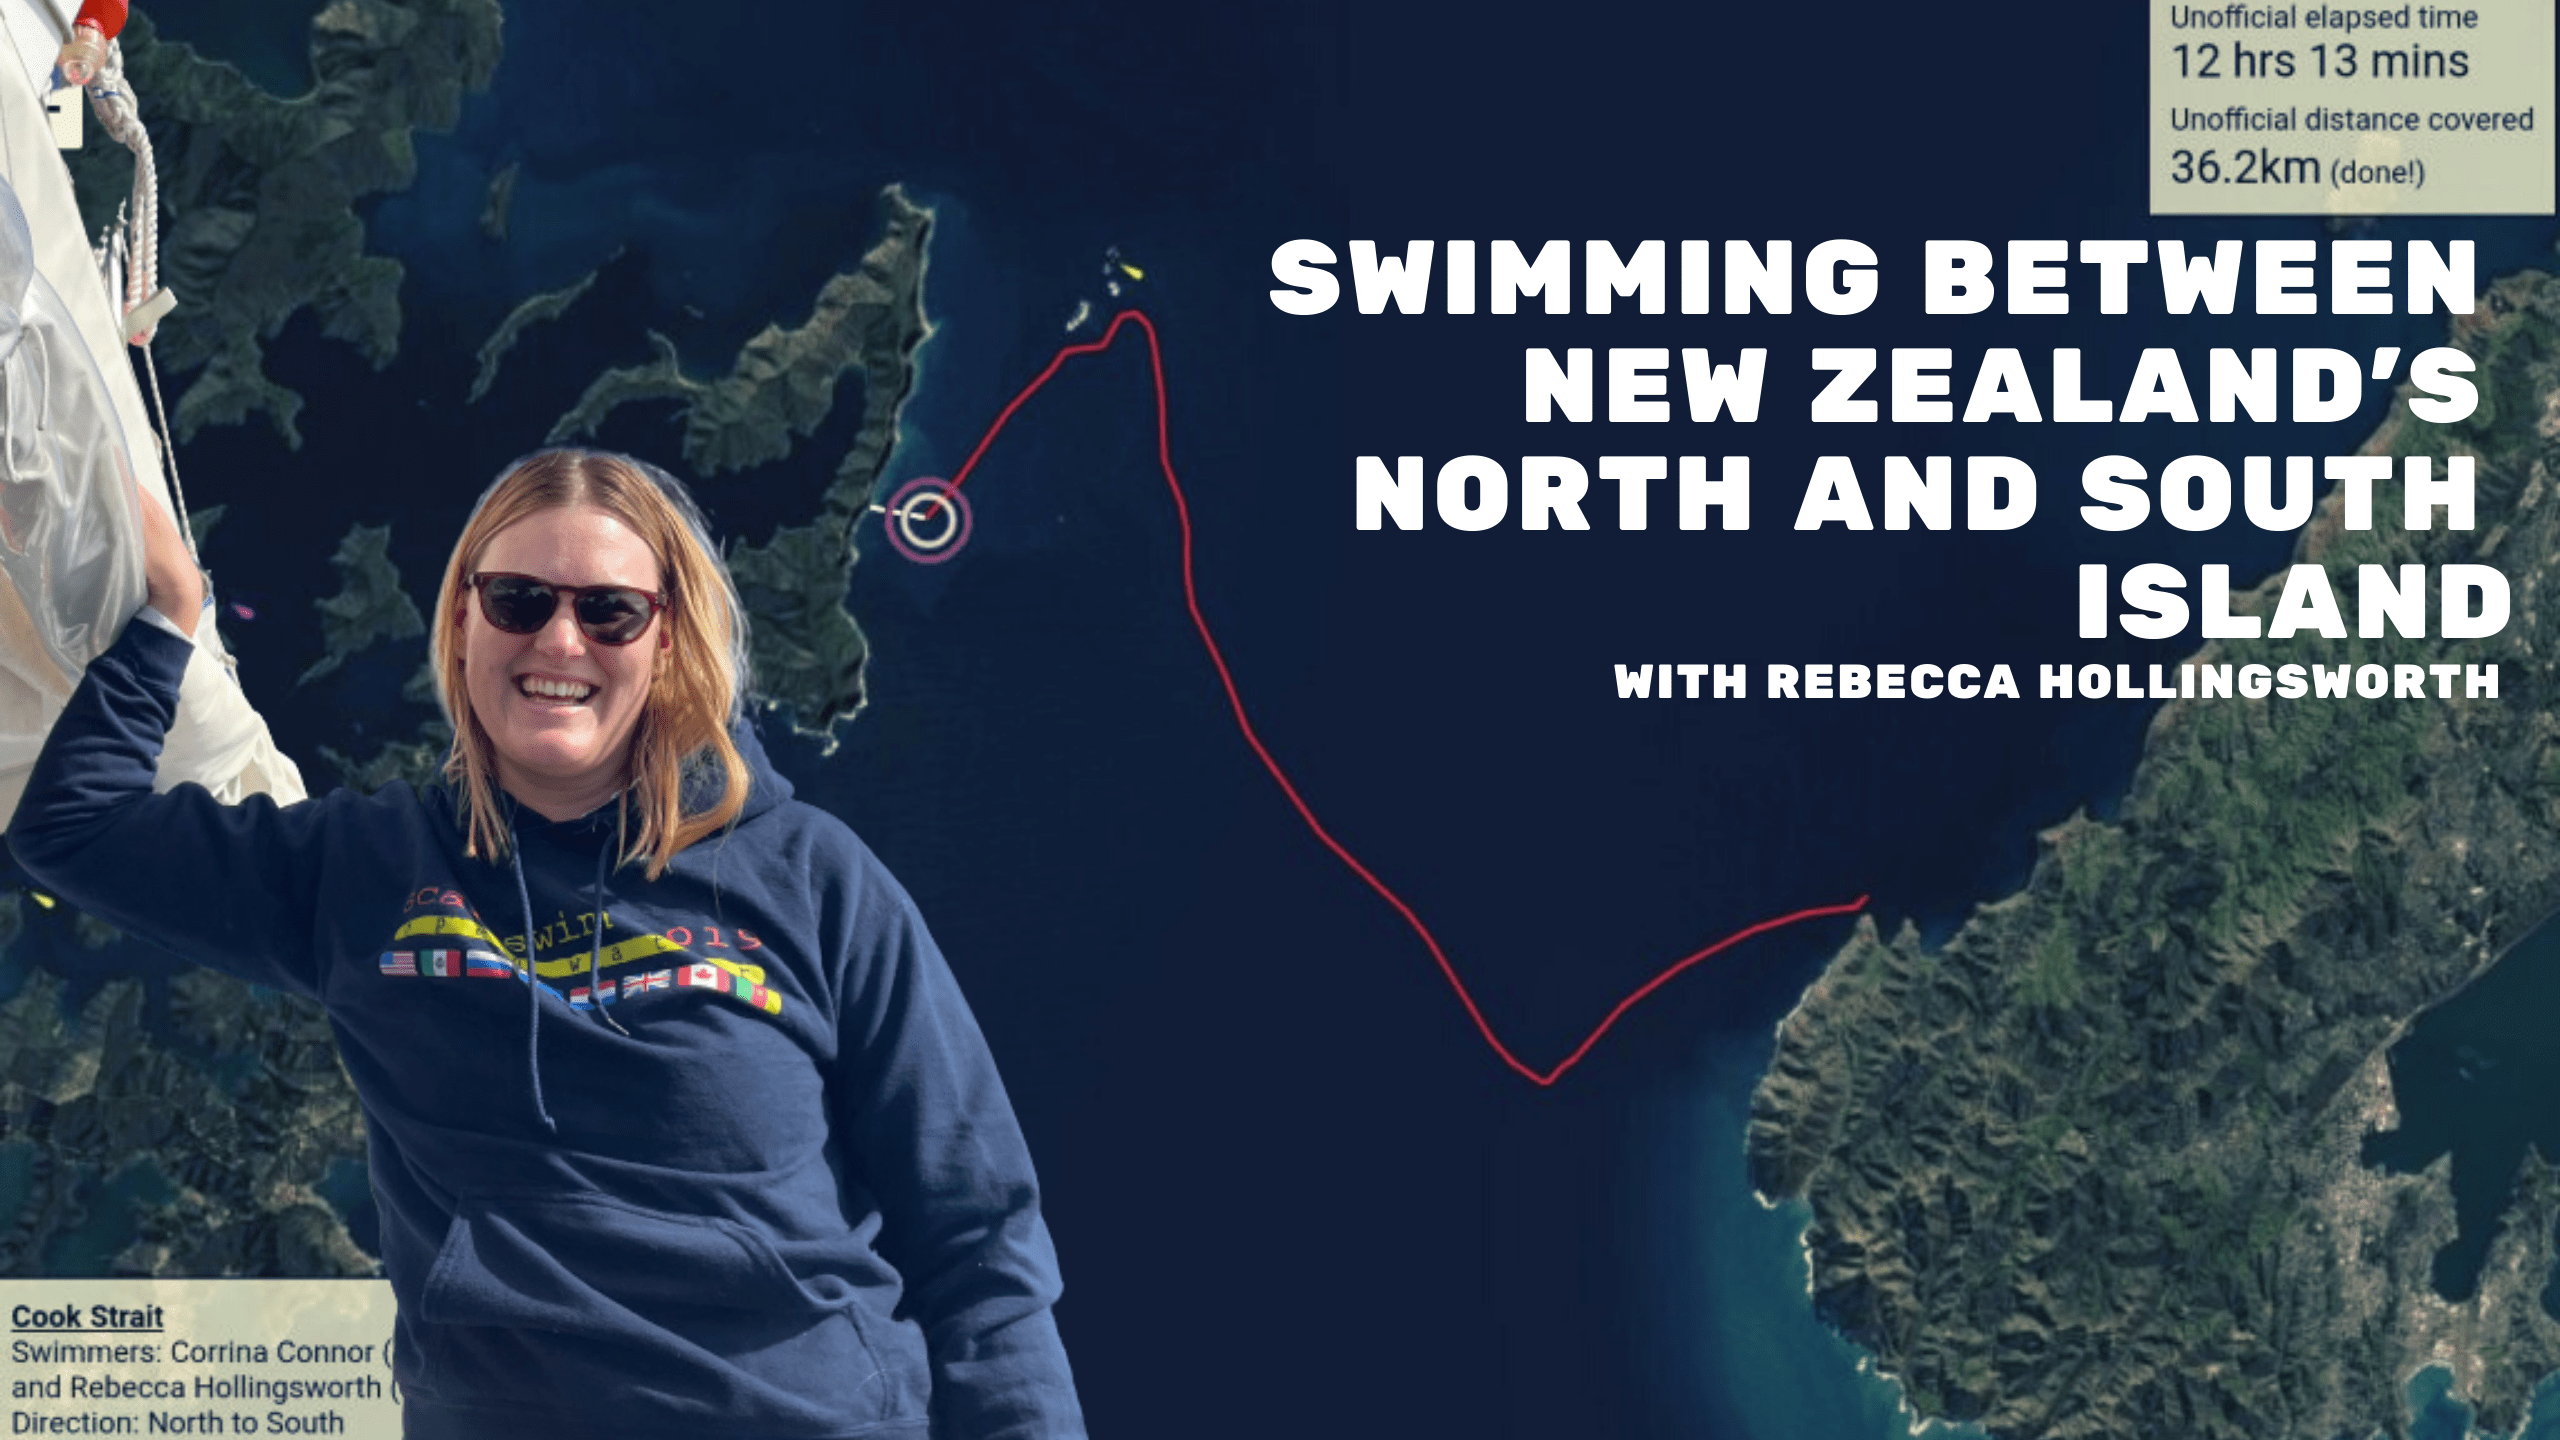 Swimming Between New Zealand's North And South Island With Rebecca Hollingsworth